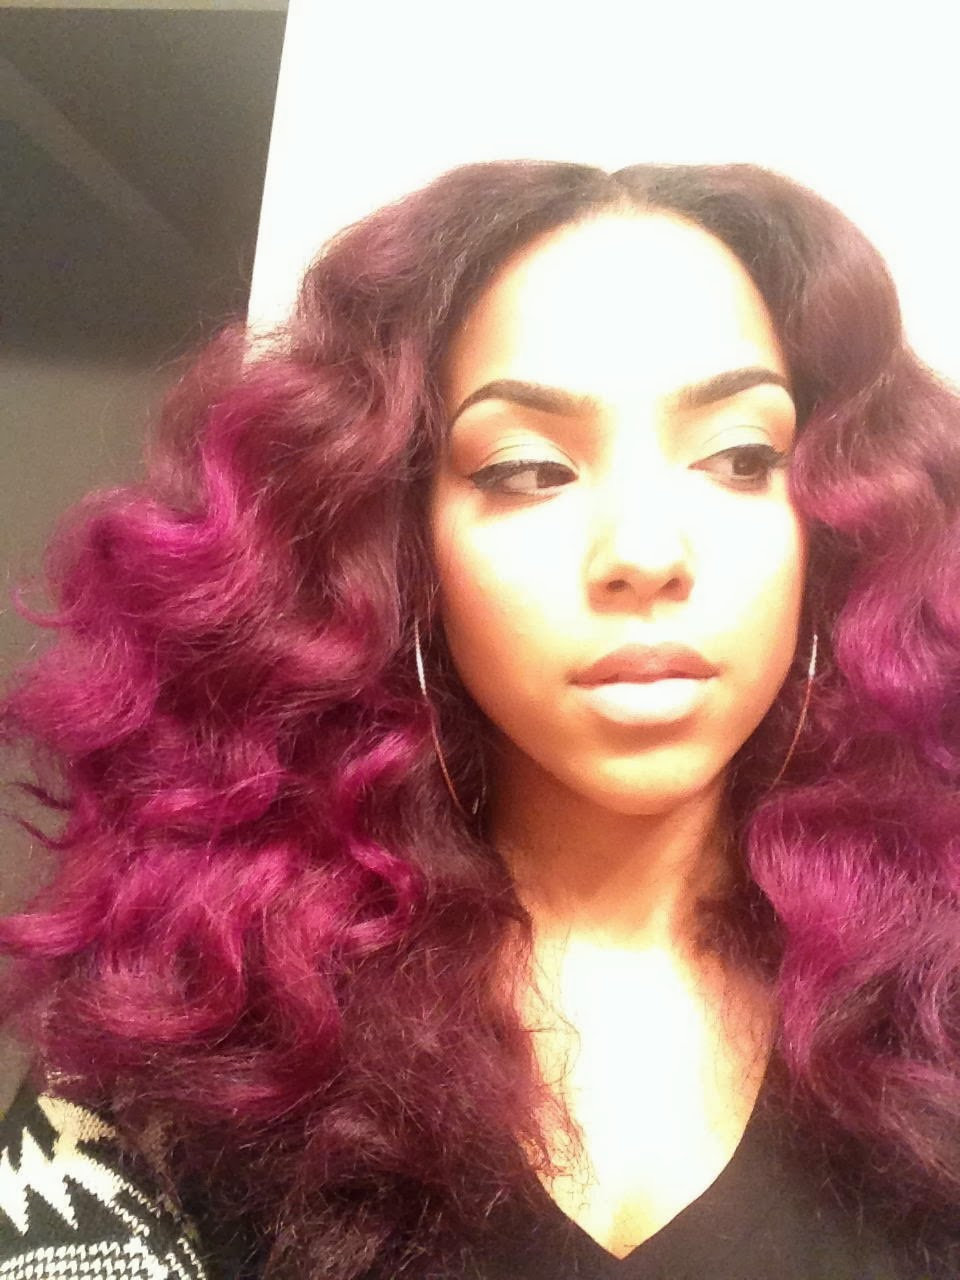 Curly Hair Style Pretty Girls With Curly Hair Instagram Hair